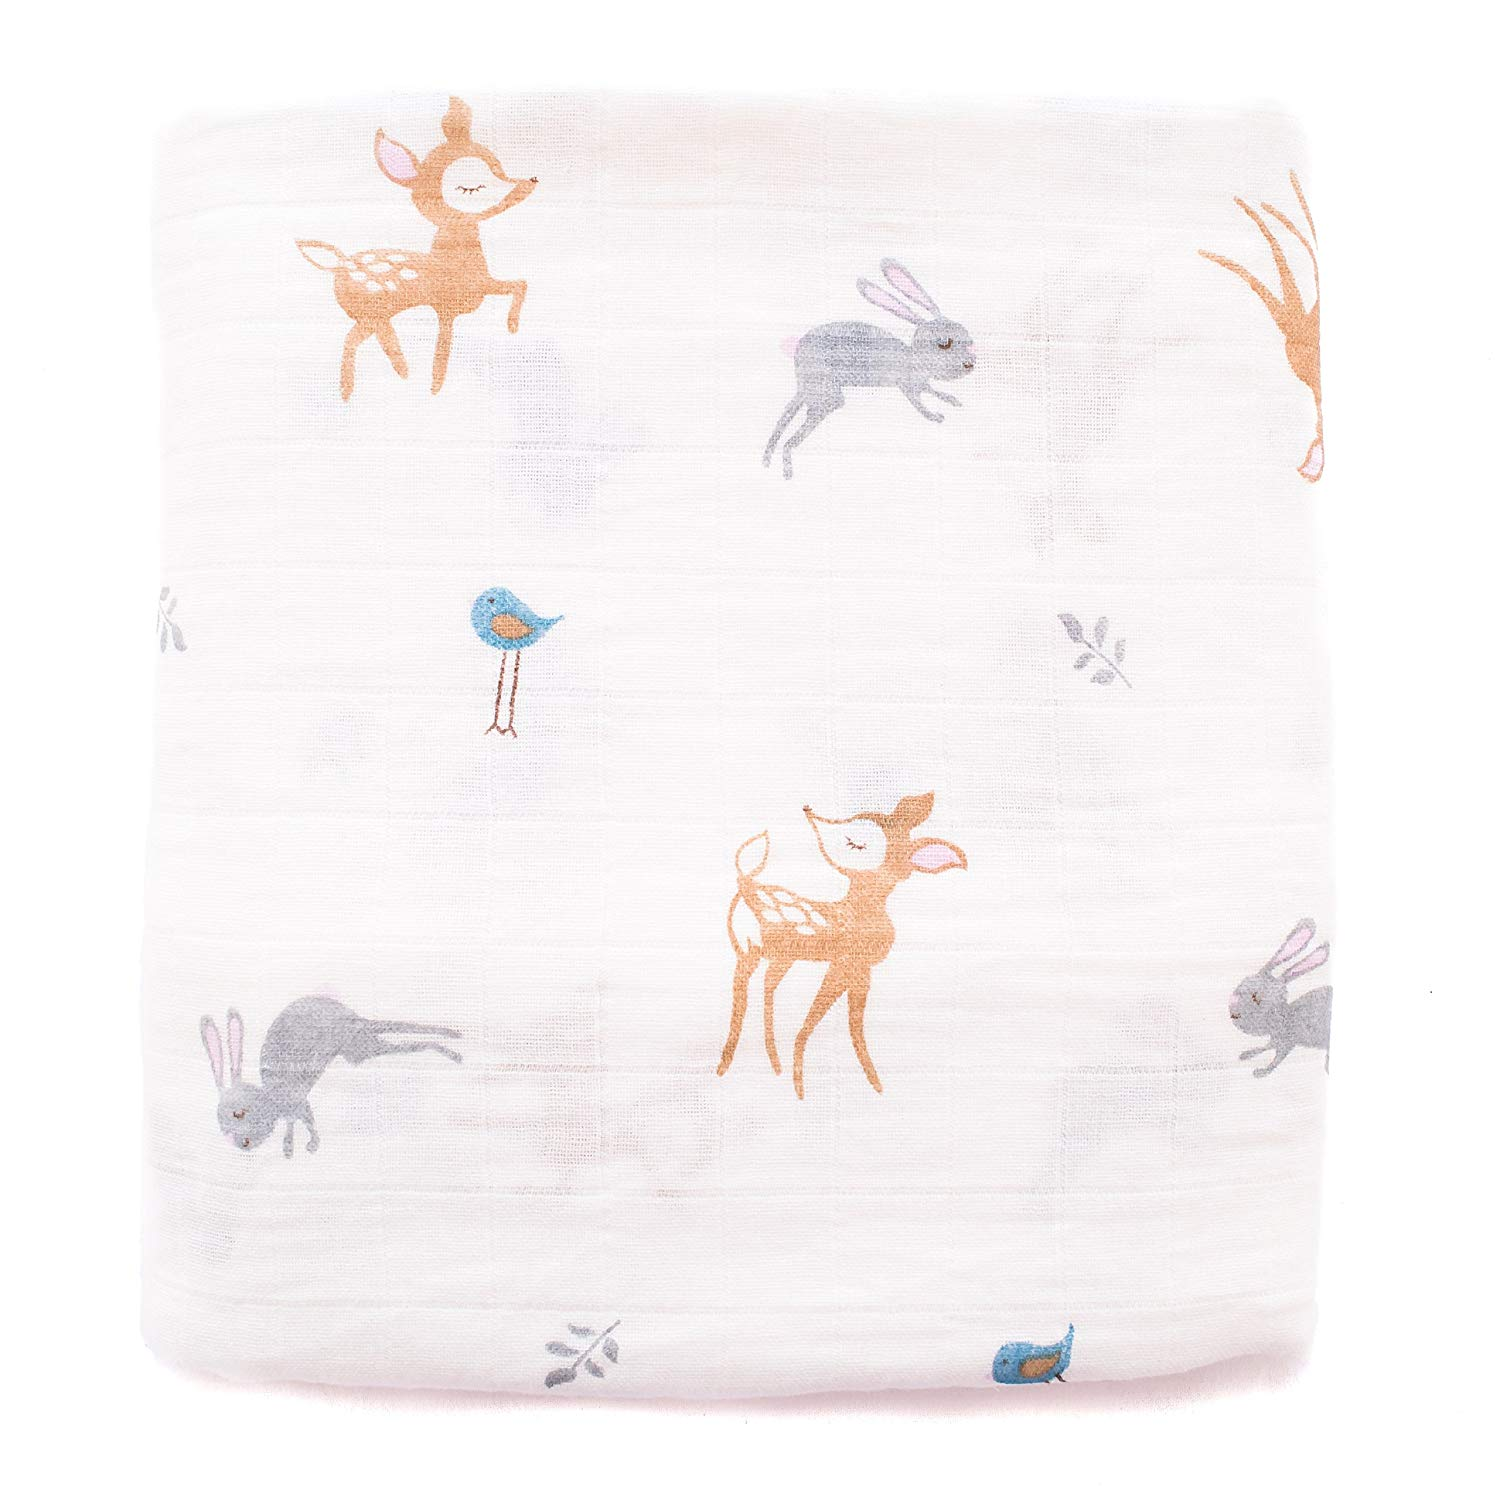 """Premium Muslin Swaddle Blanket, 100% Muslin Cotton, Extra Soft, Large 47"""" x 47"""", Unisex Deer Print, Swaddle wrap for Baby Boys and Girls, Ideal Newborn Baby Shower Gift by Ttam baby"""